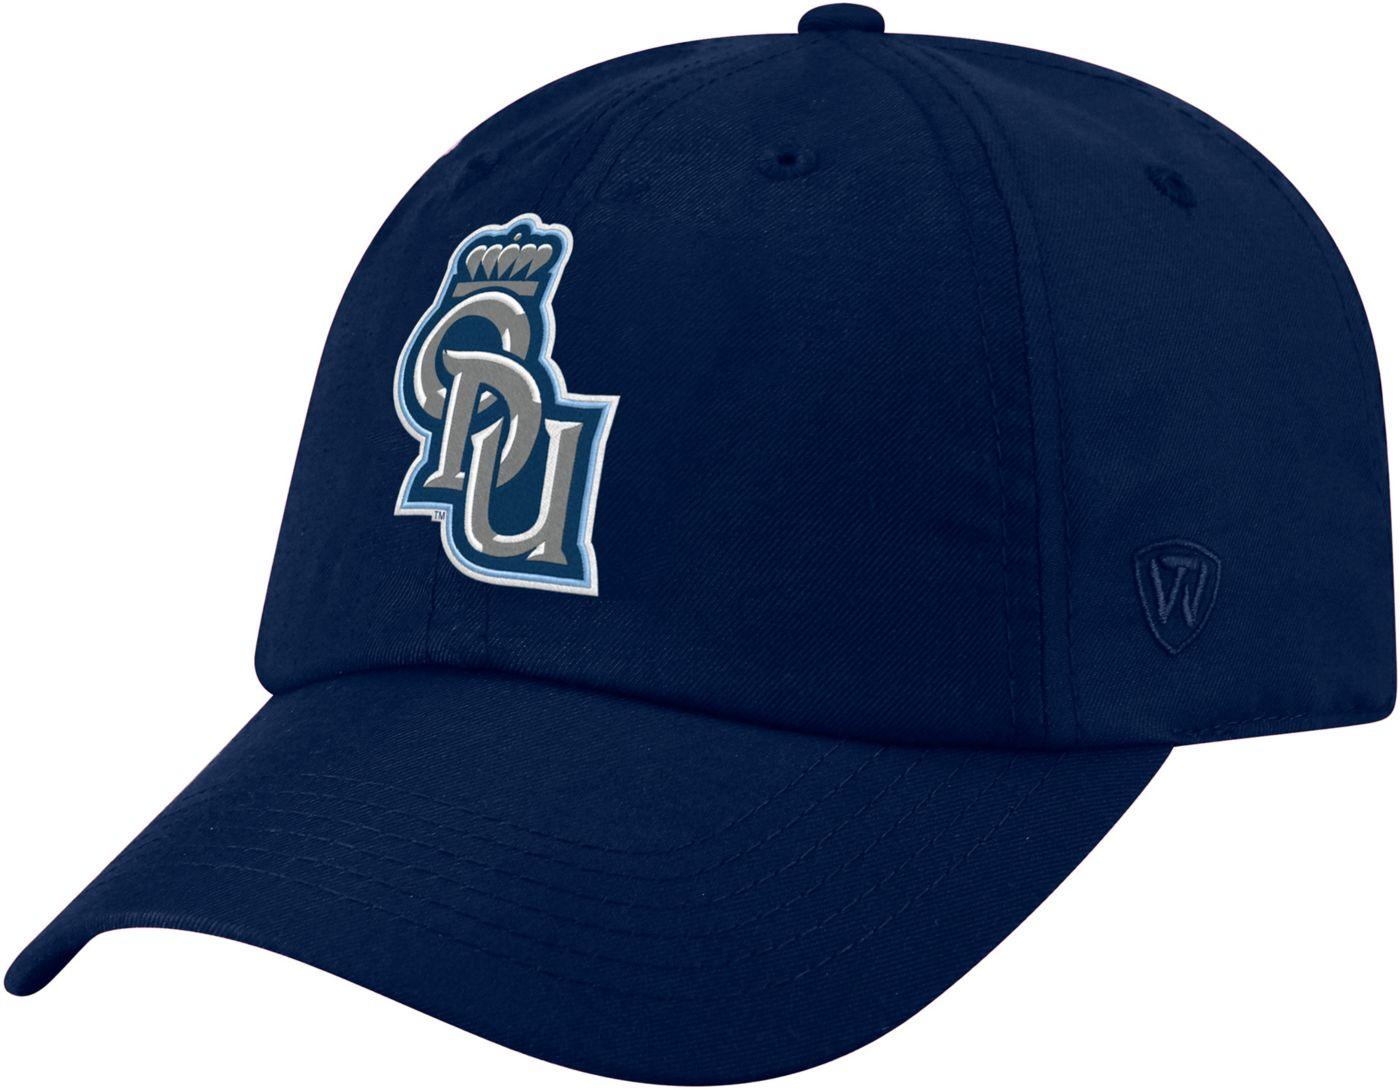 Top of the World Men's Old Dominion Monarchs Blue Staple Adjustable Hat